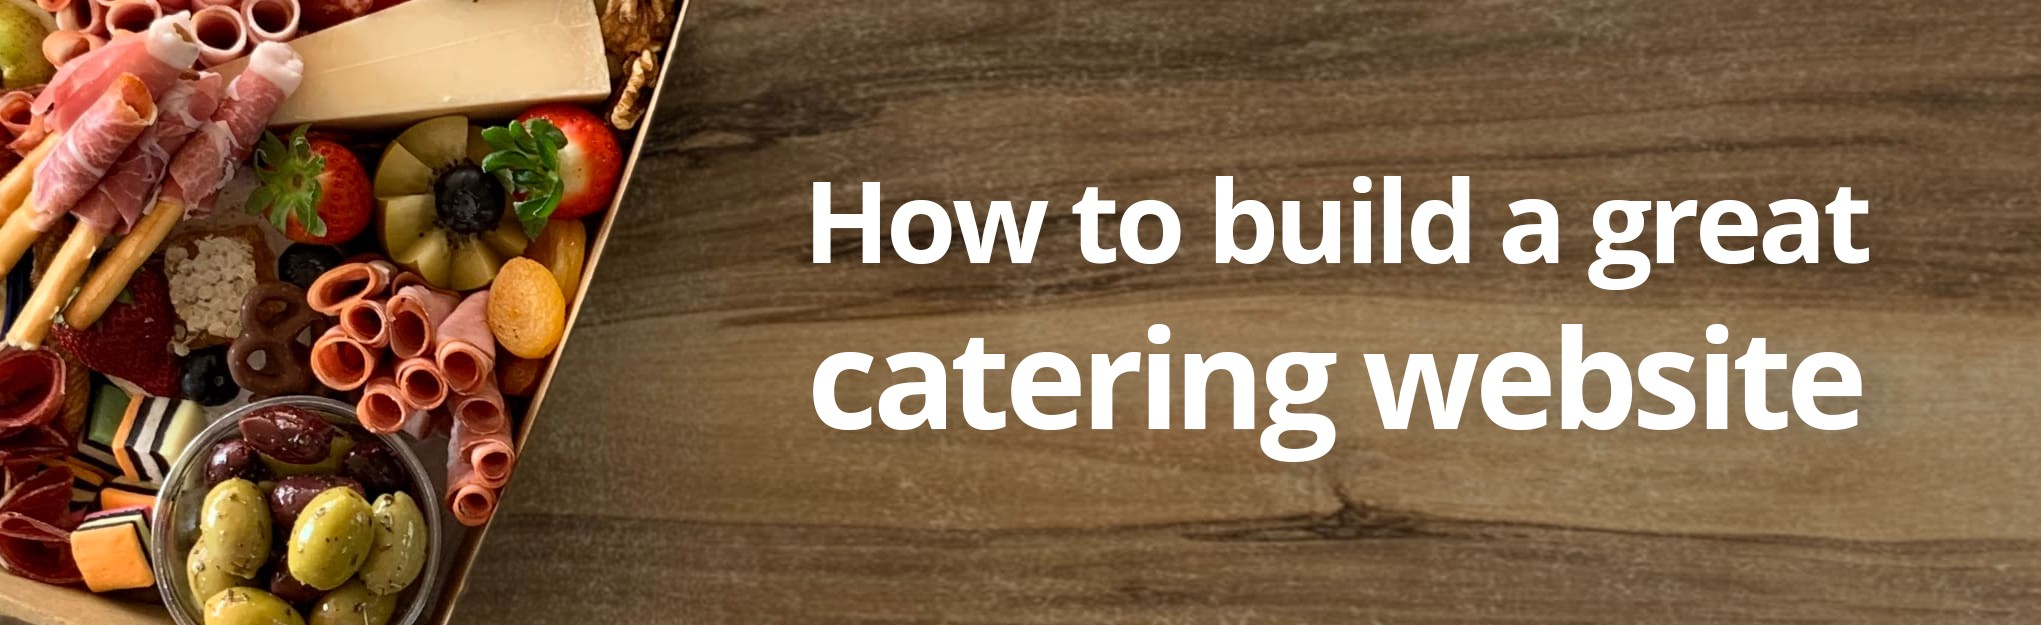 How to build a great catering website